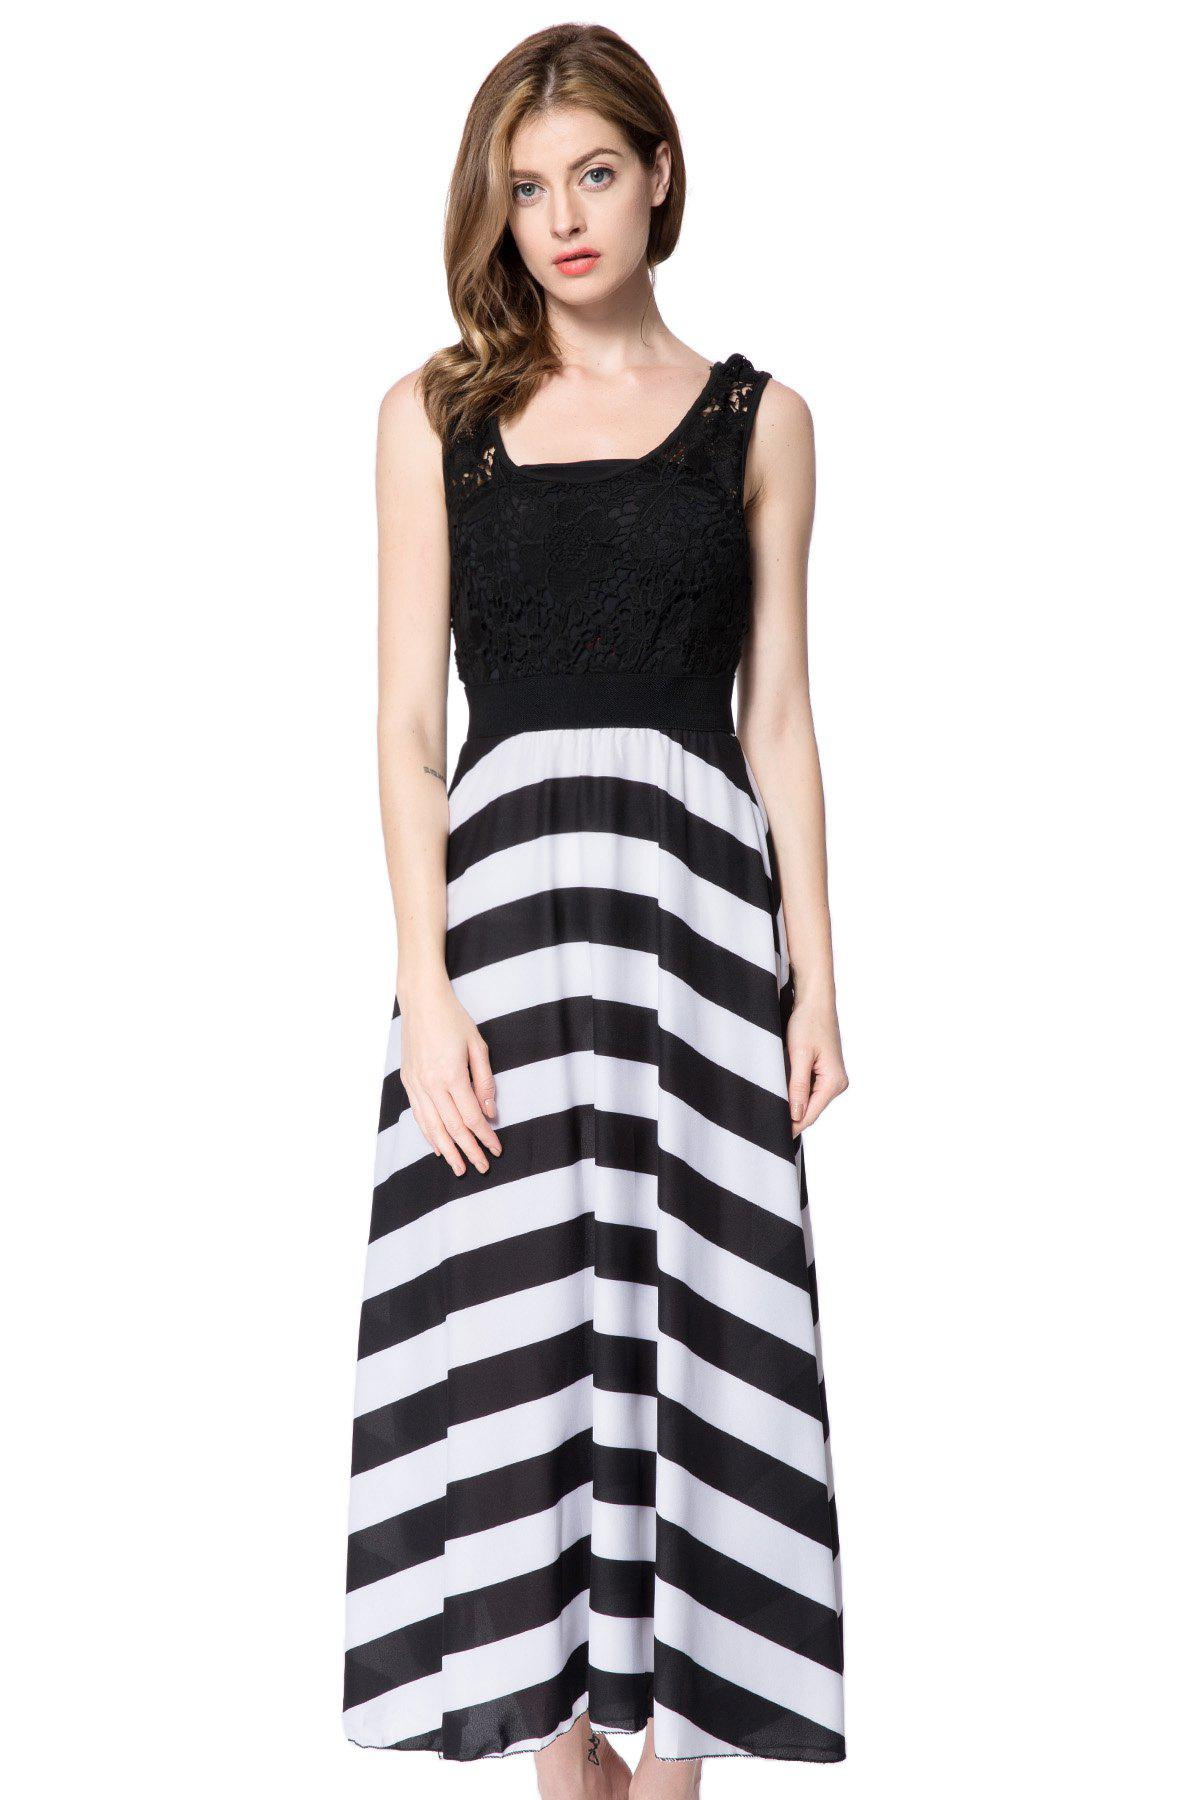 Lace Embellished Hollow Out Design Sleeveless Scoop Neck Striped Dress - WHITE/BLACK M